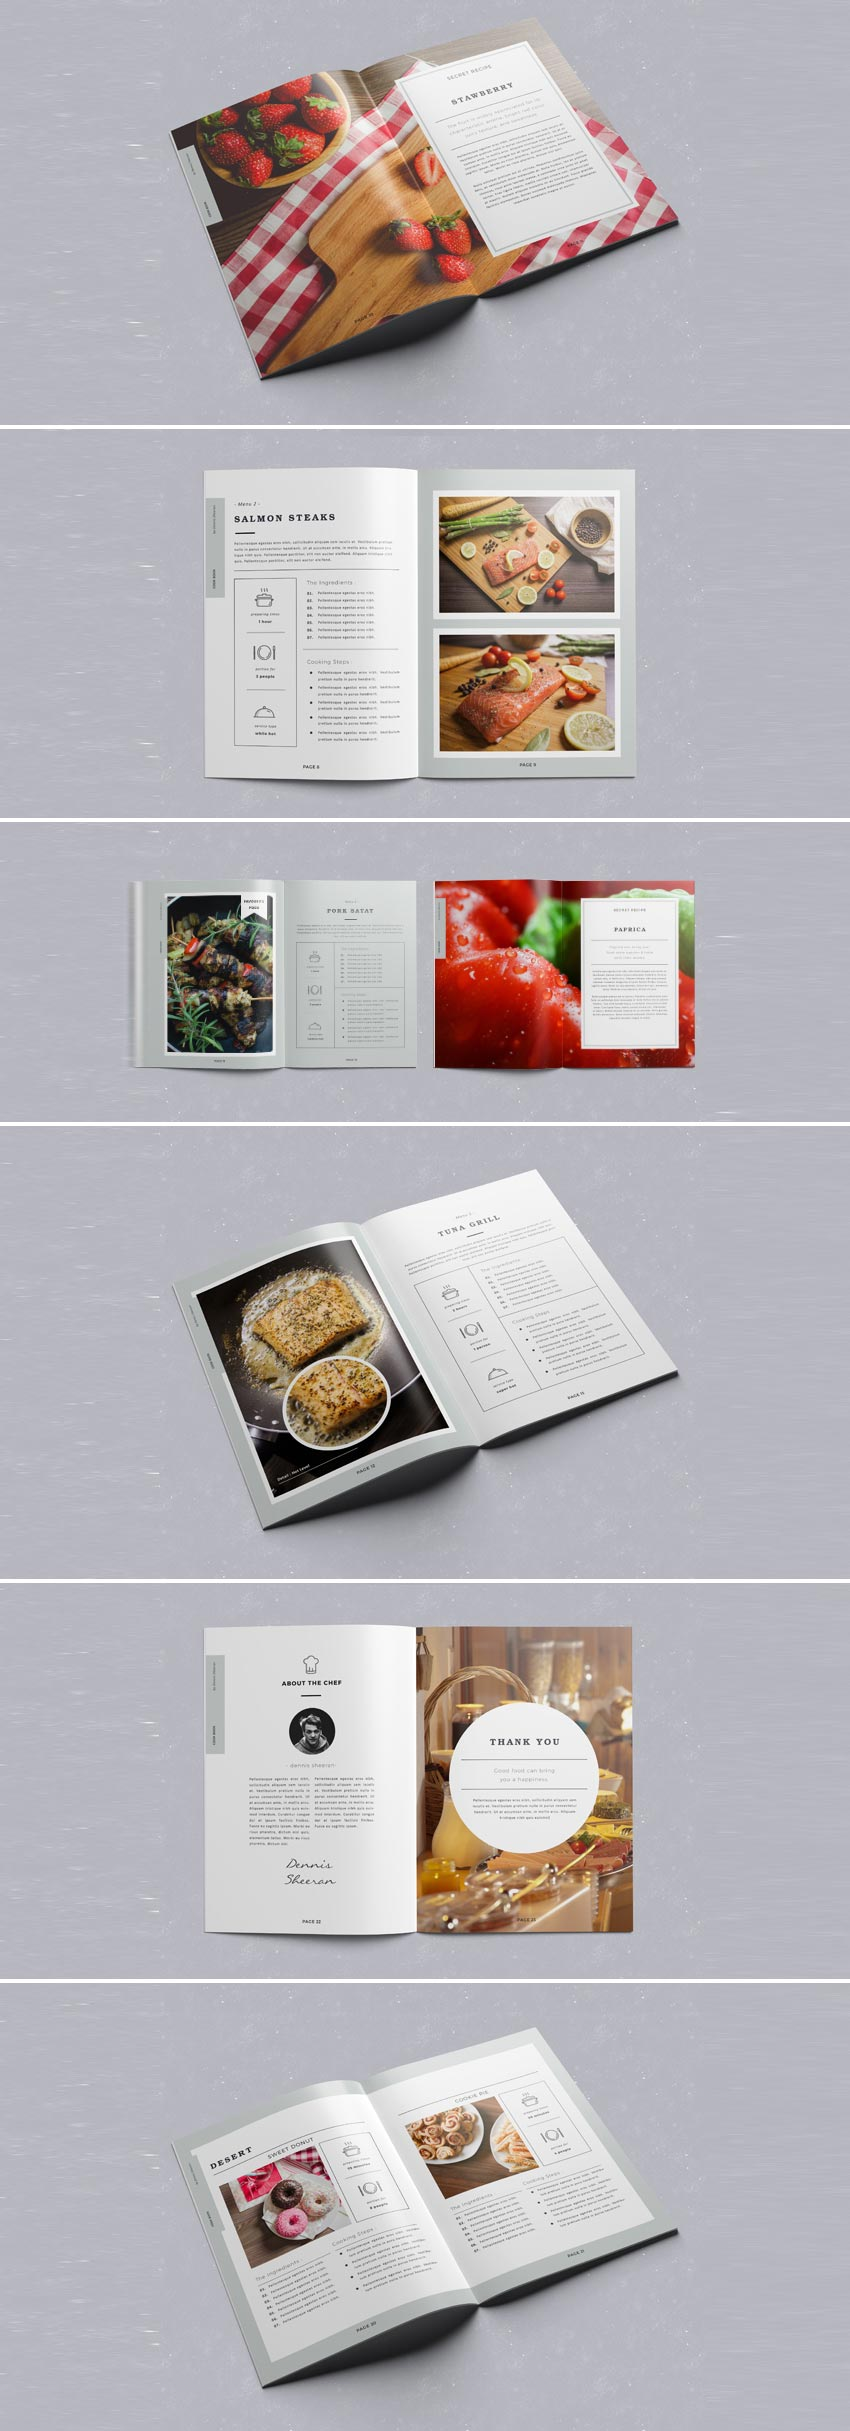 cookbook indesign template